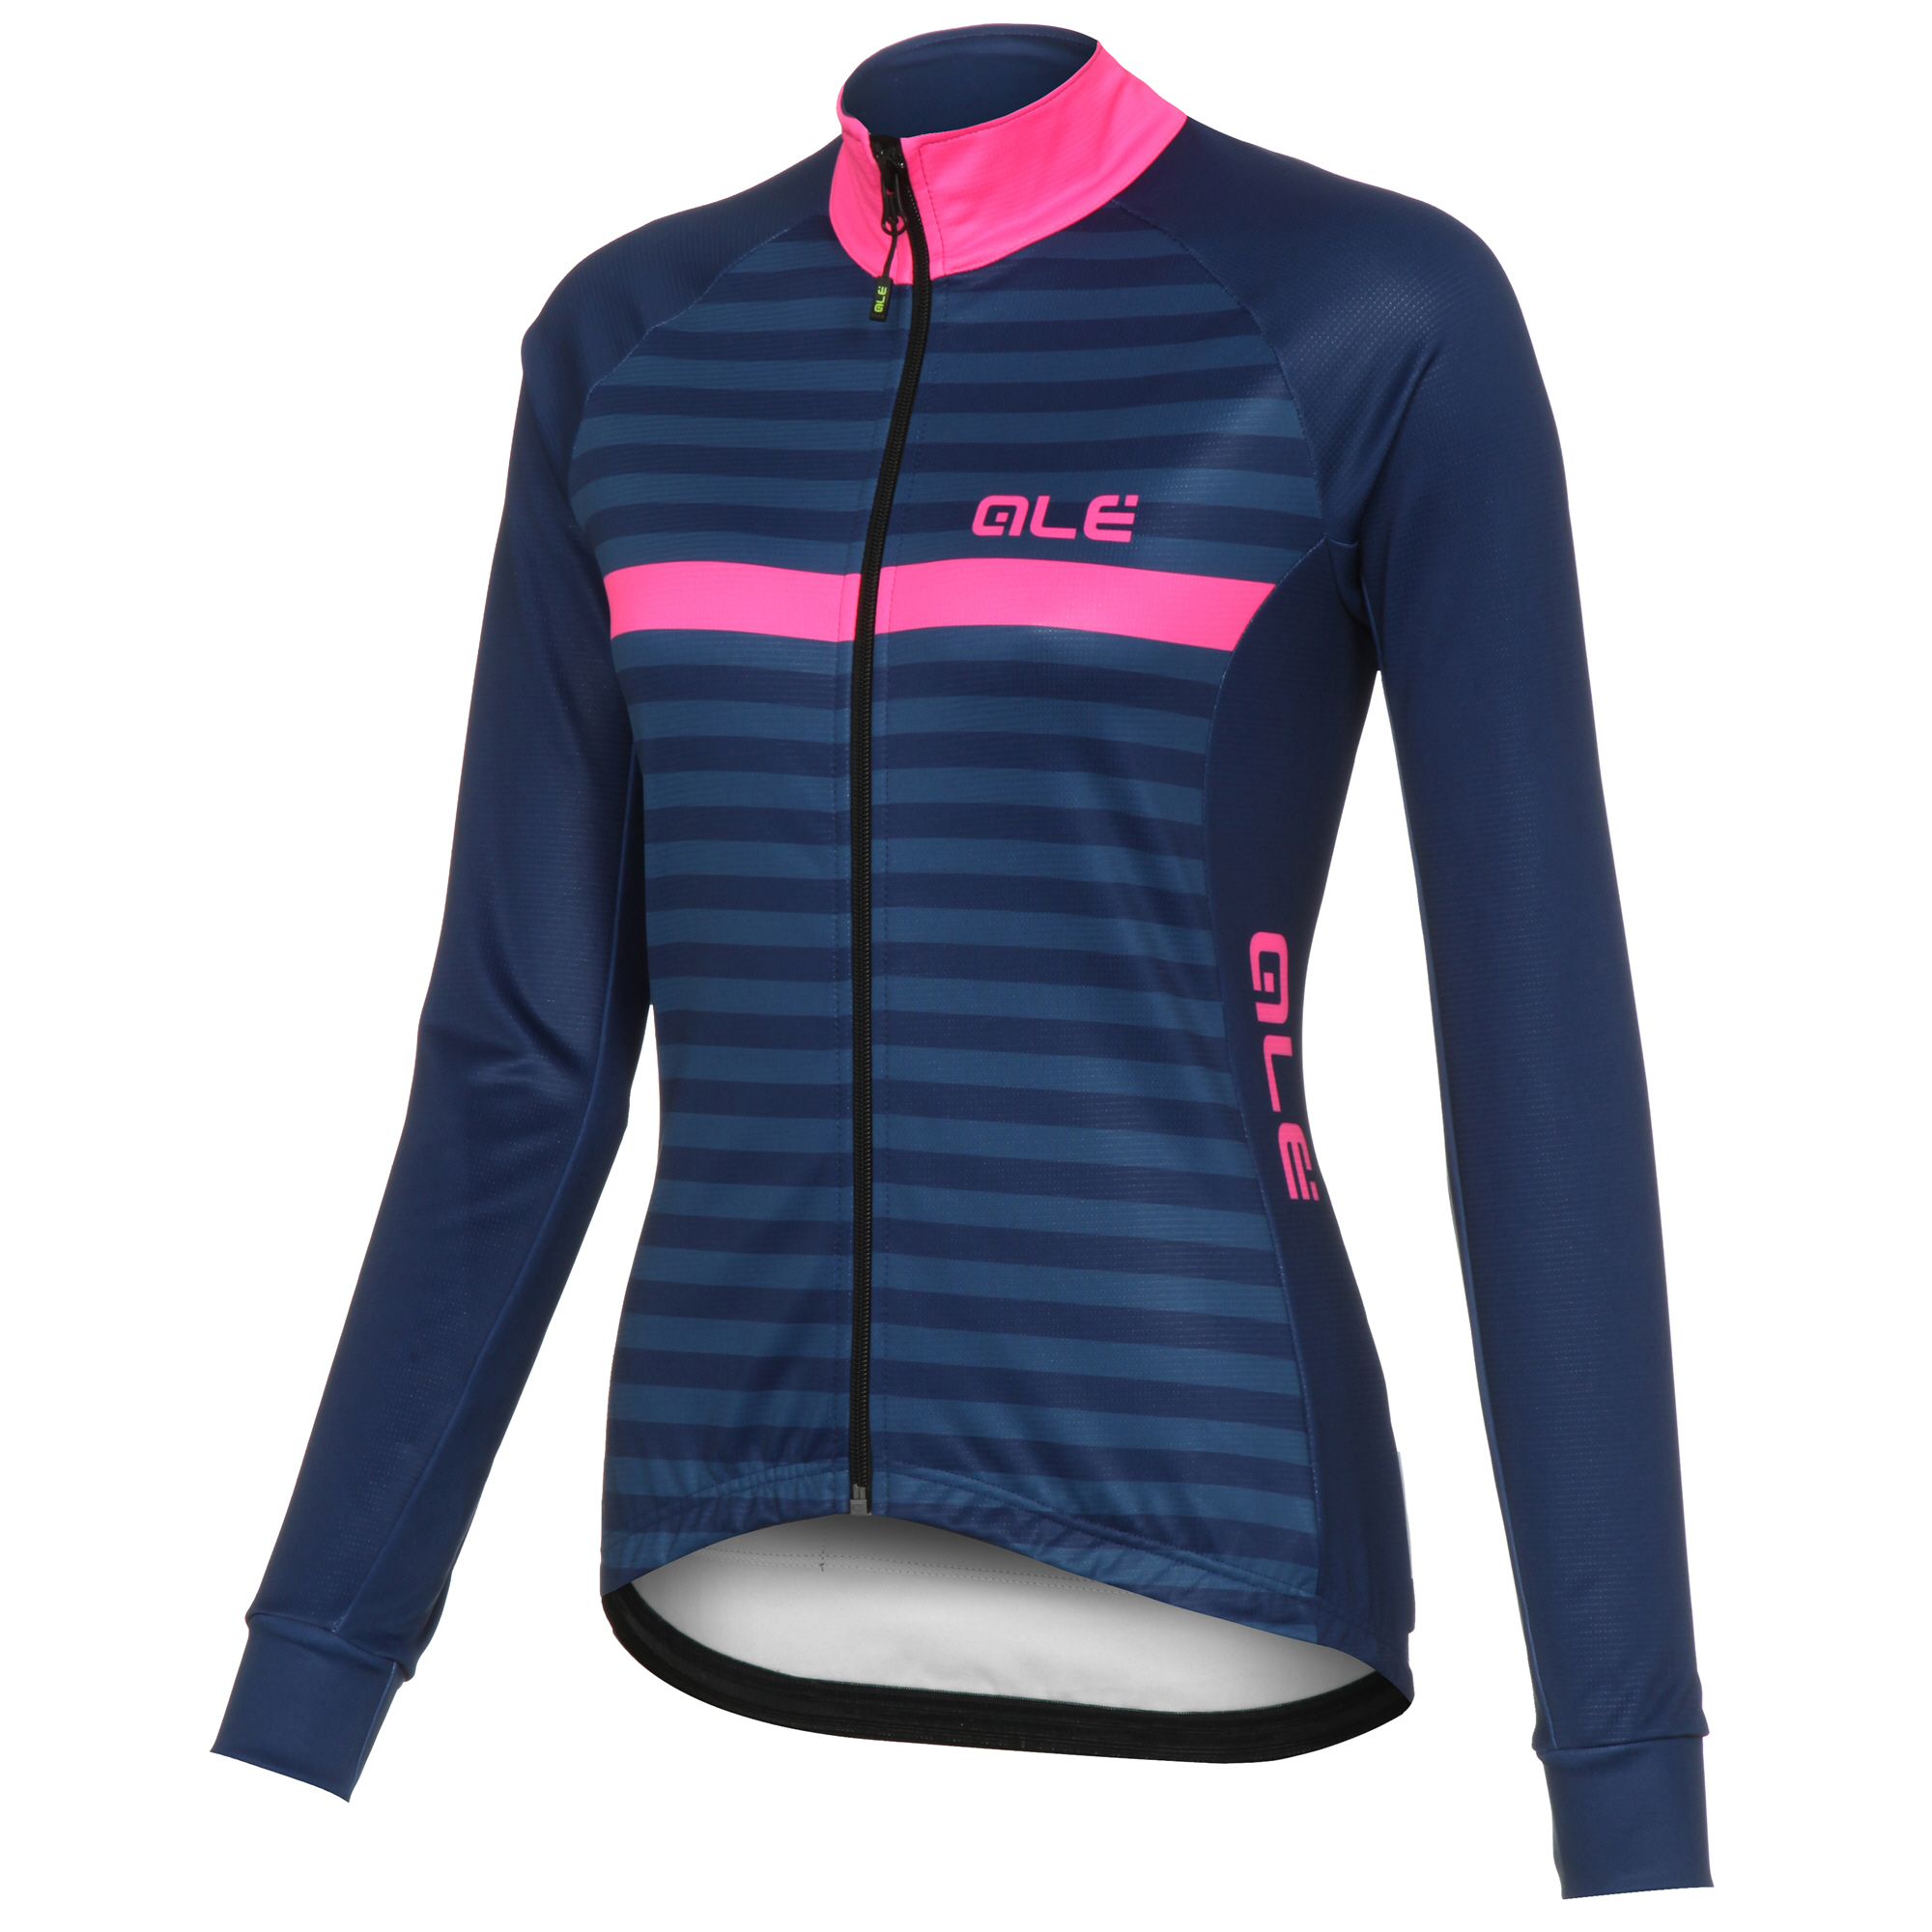 Cycling collection Alé Riviera-jacket and jerseys short/long sleeve